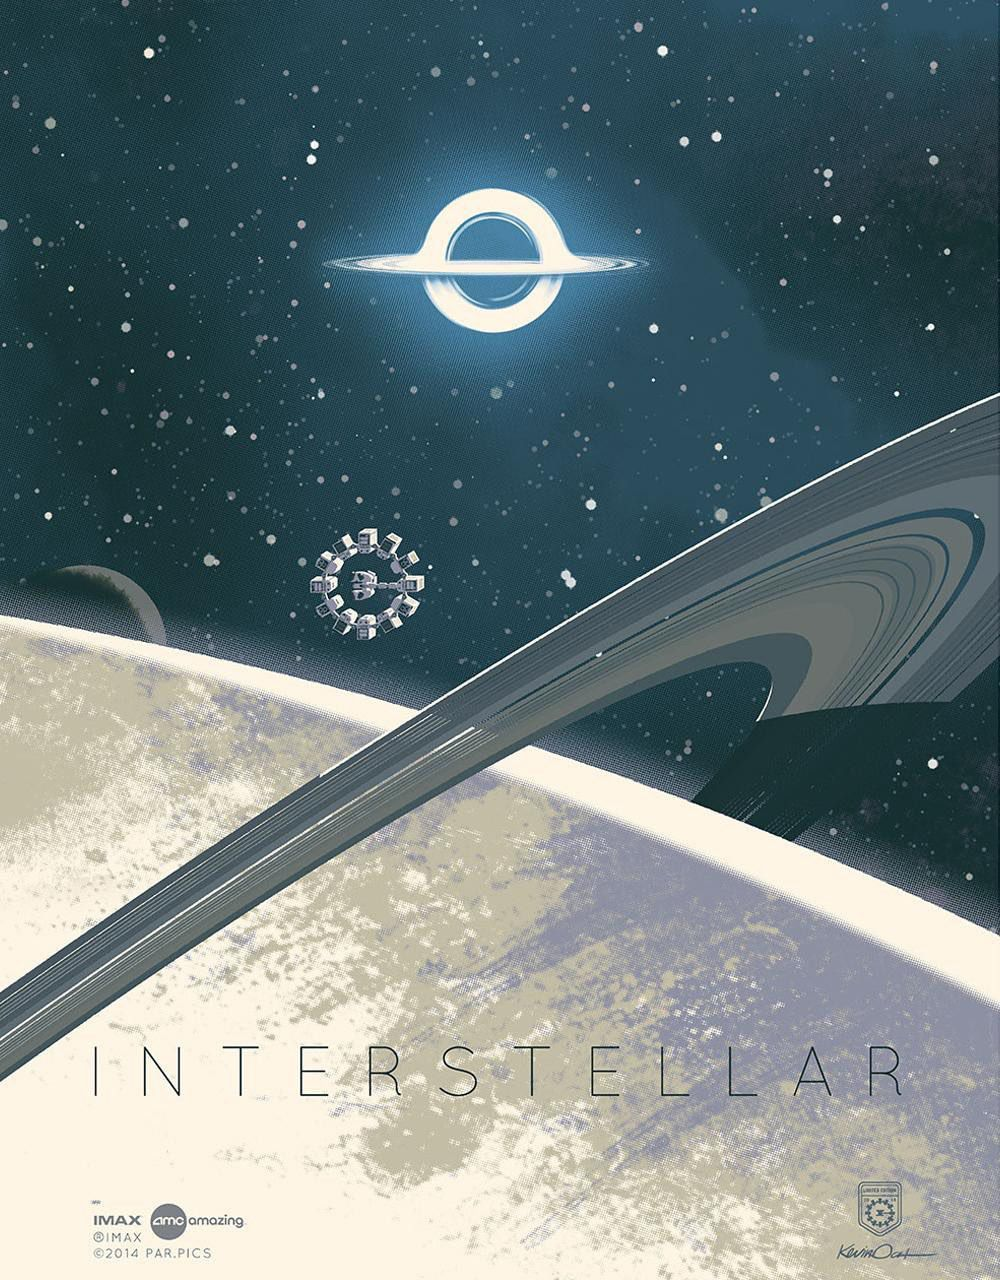 Interstellar - poster - space